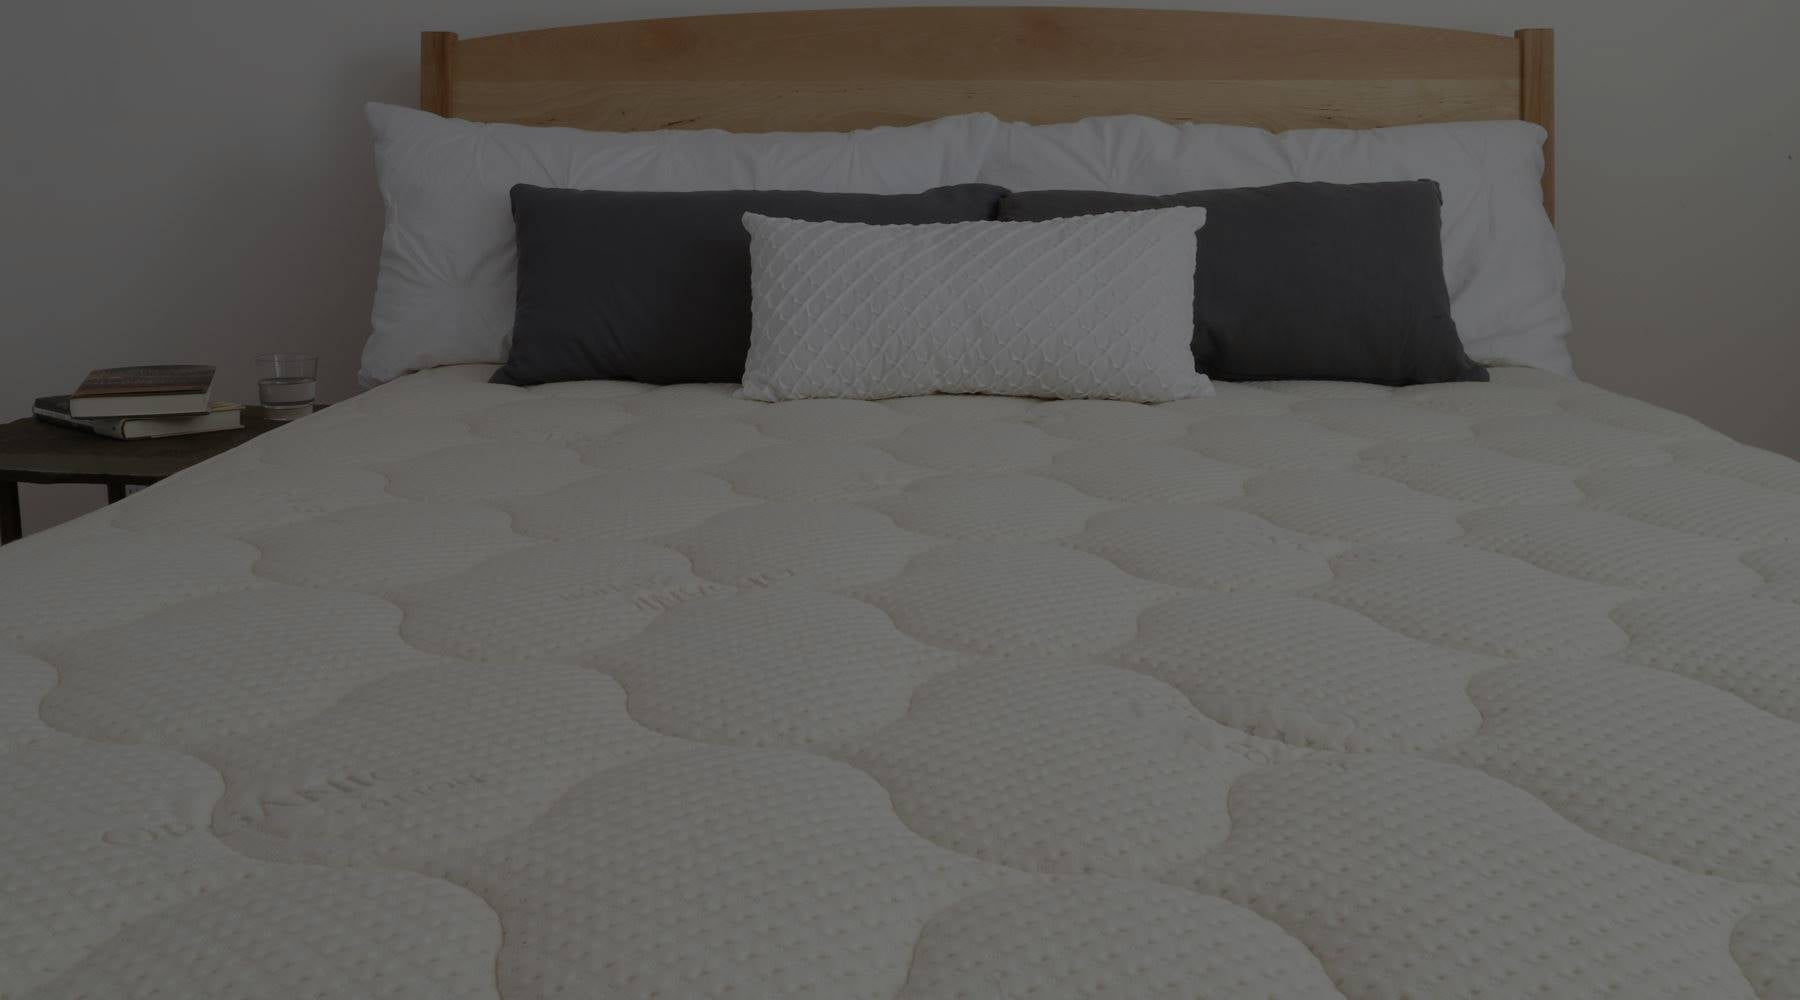 Spindle's mattress with navy blue and white pillows on wood platform bed